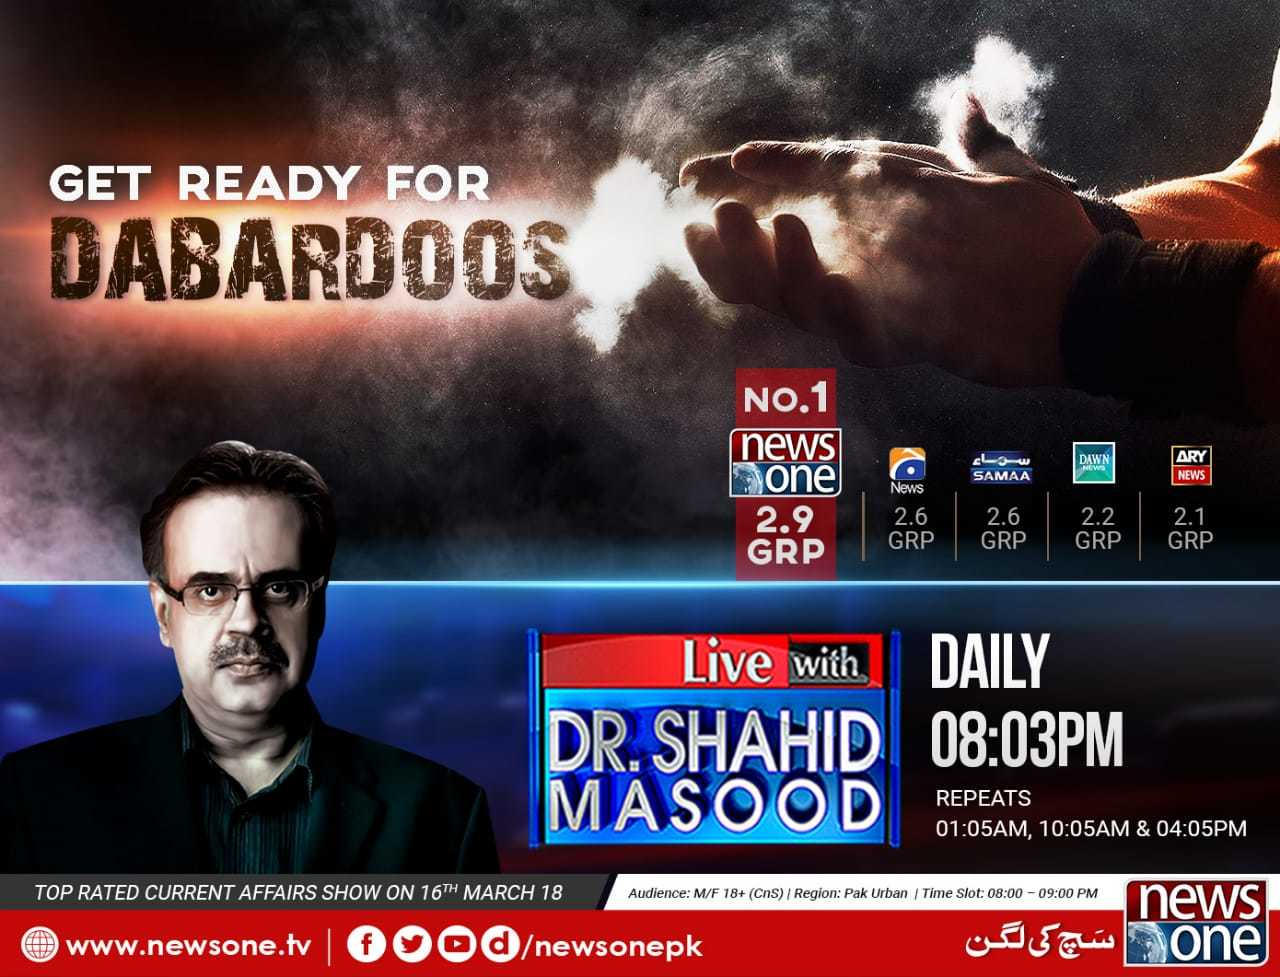 GET READY FOR DABARDOOS Pakistan's top rated current affairs